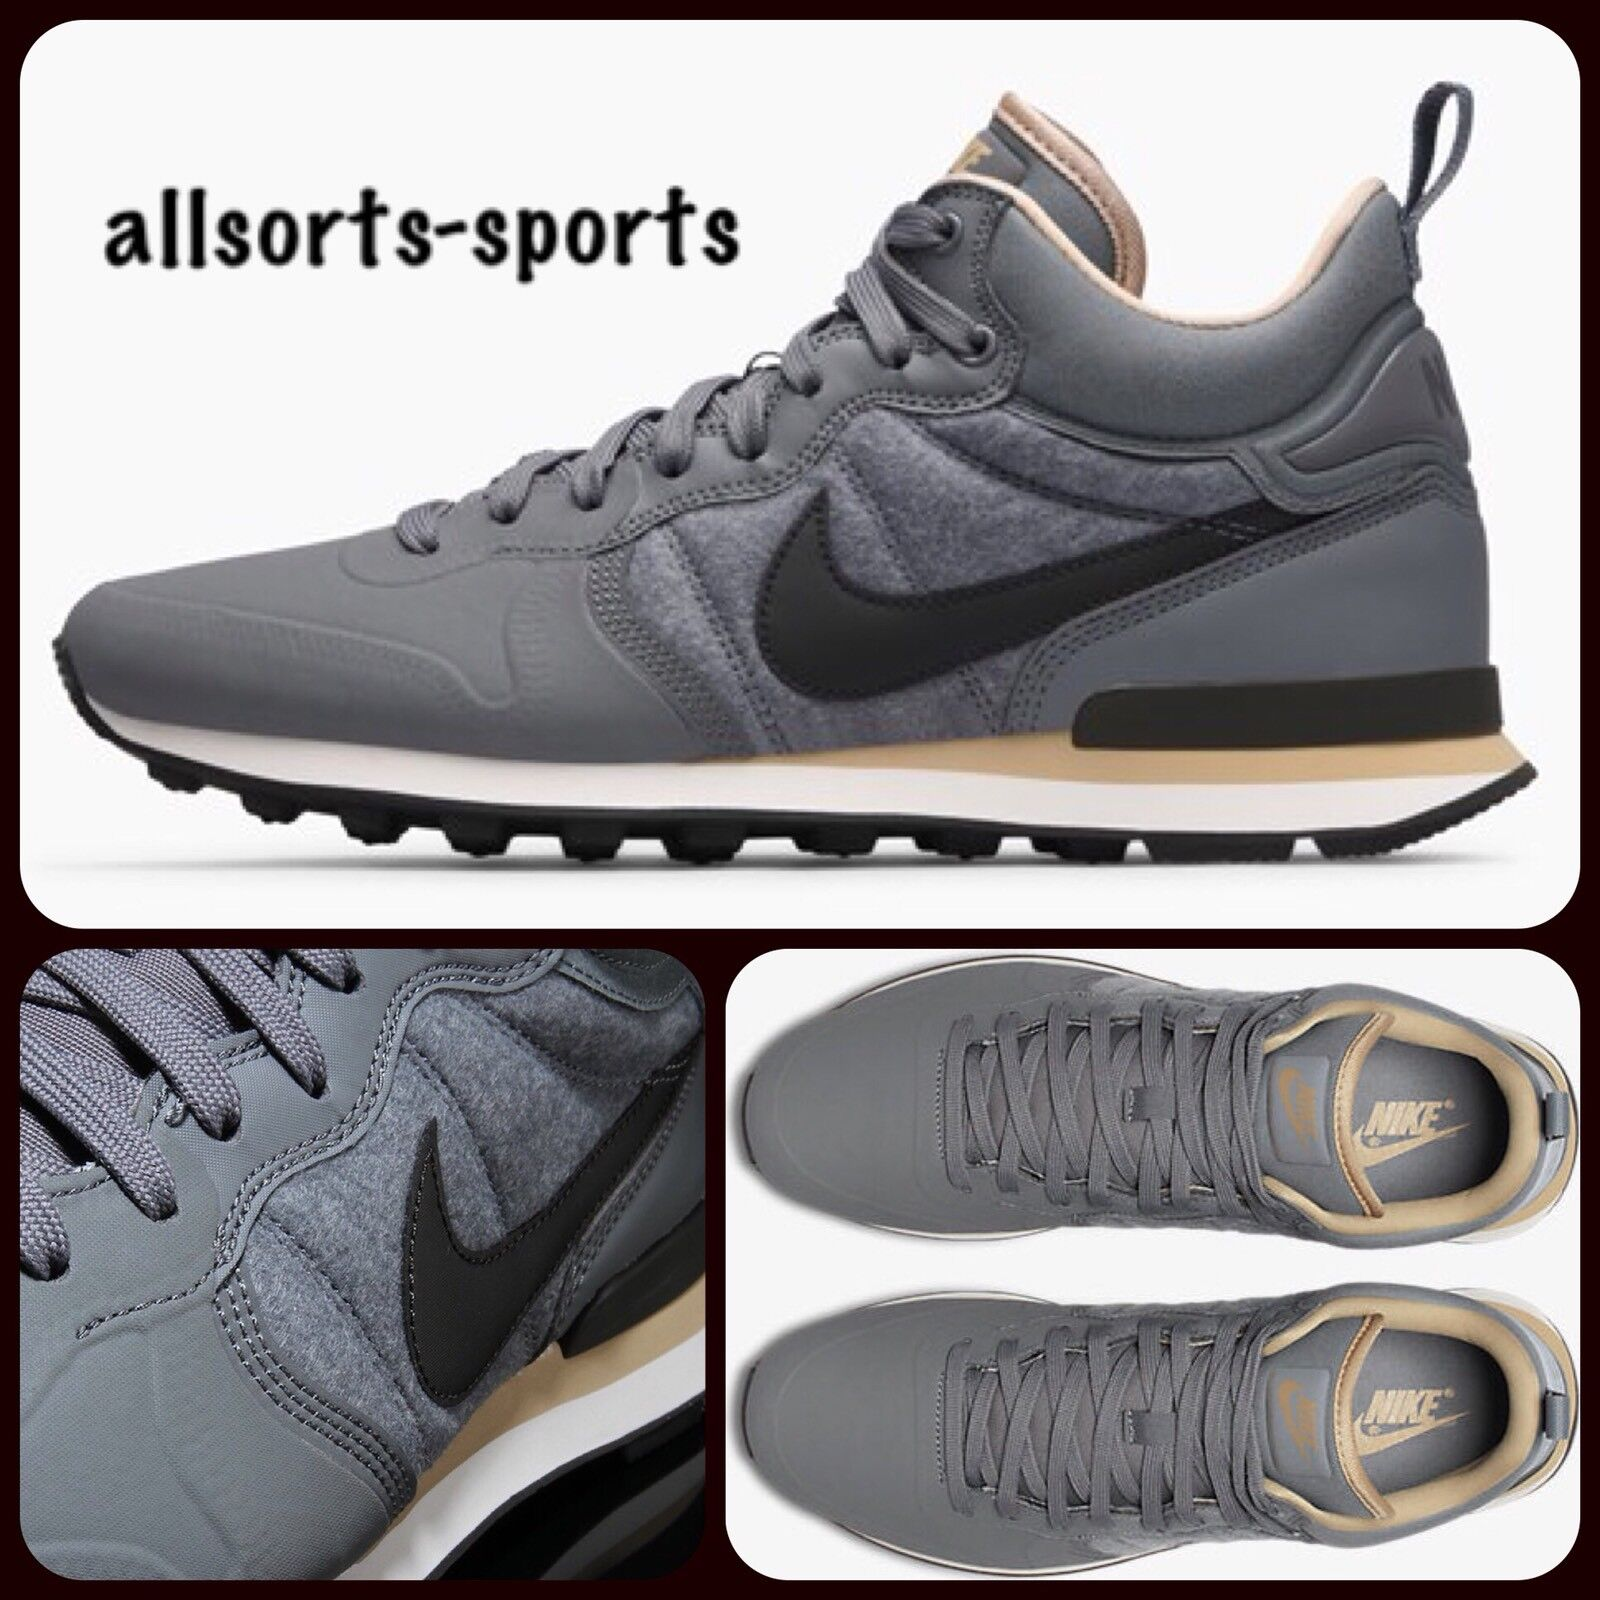 W19 Nike Internationalist 6 Utility Sneakerboot 857937-0035.5 EU 38.5 US 6 Internationalist 157ab5